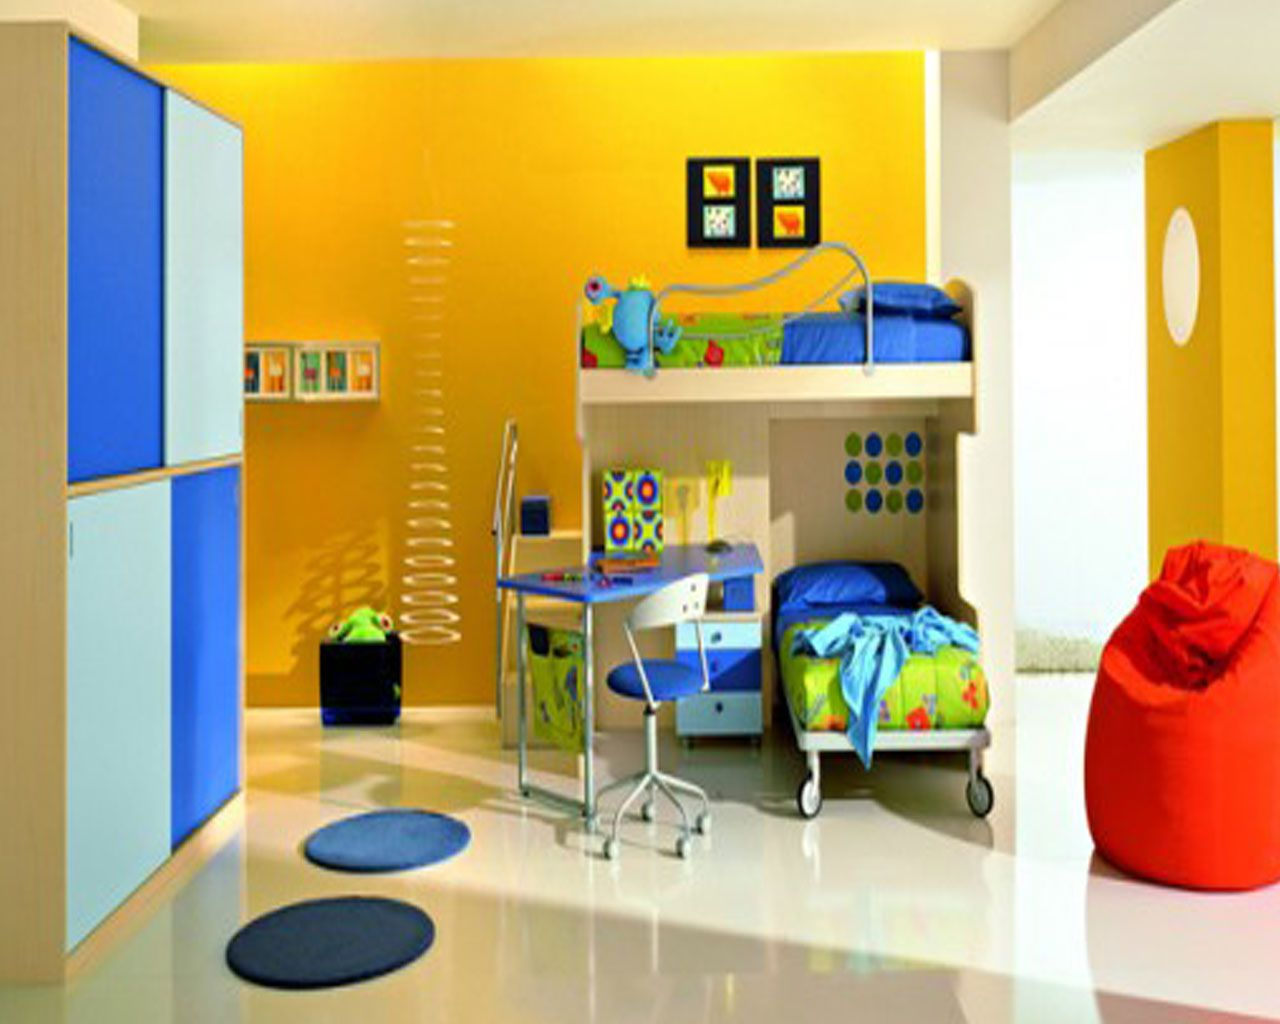 Bedroom paint ideas for boys - Boys Bedroom Colors Ideas Cool Boys Bedroom Interior Design With Bright Color Paint 2617 Hd